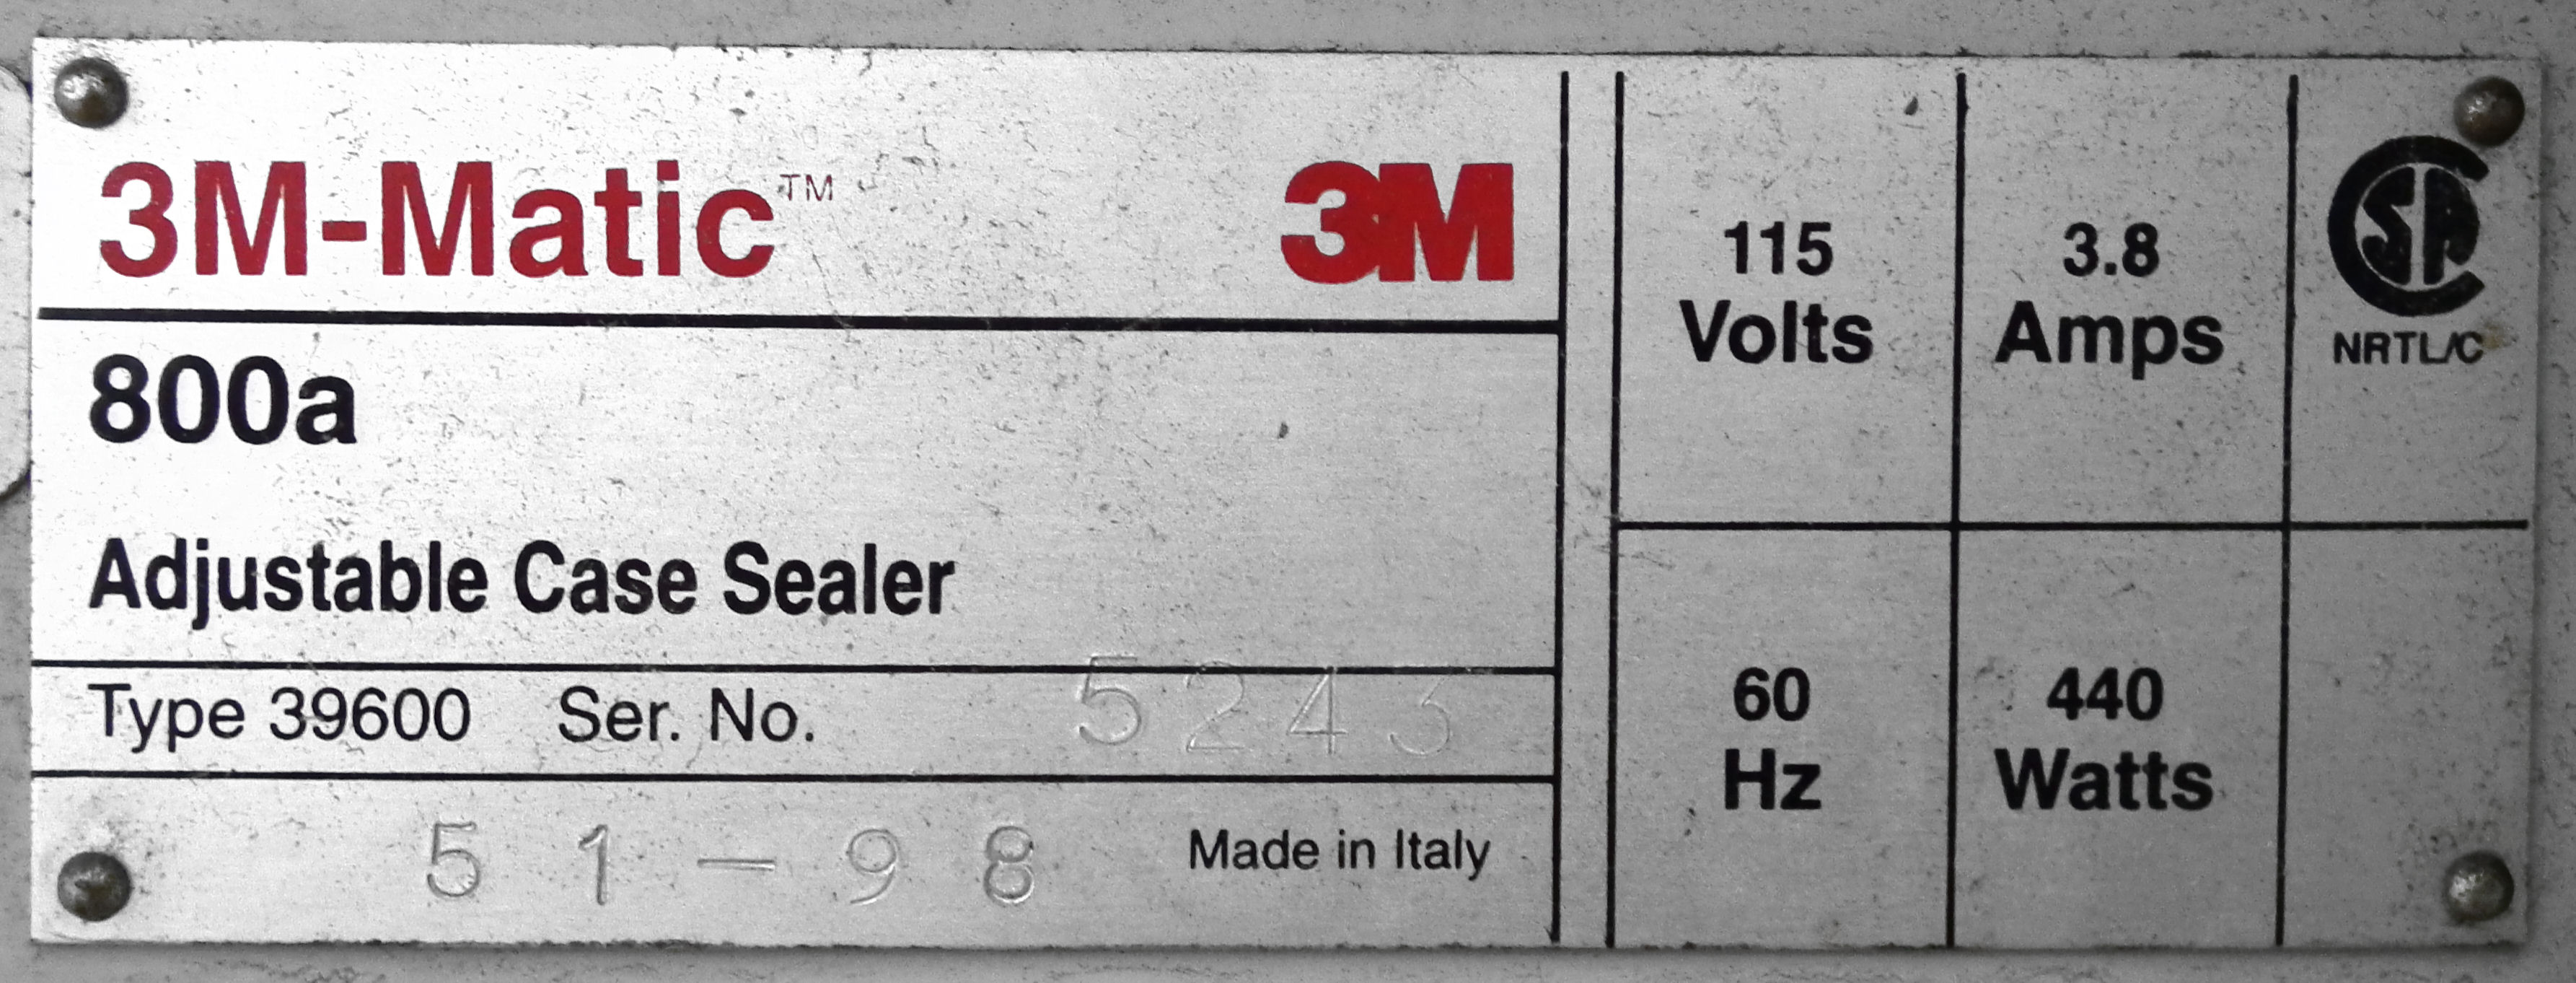 3M Top and Bottom Case Taper Model 800A B4595 - Image 8 of 8